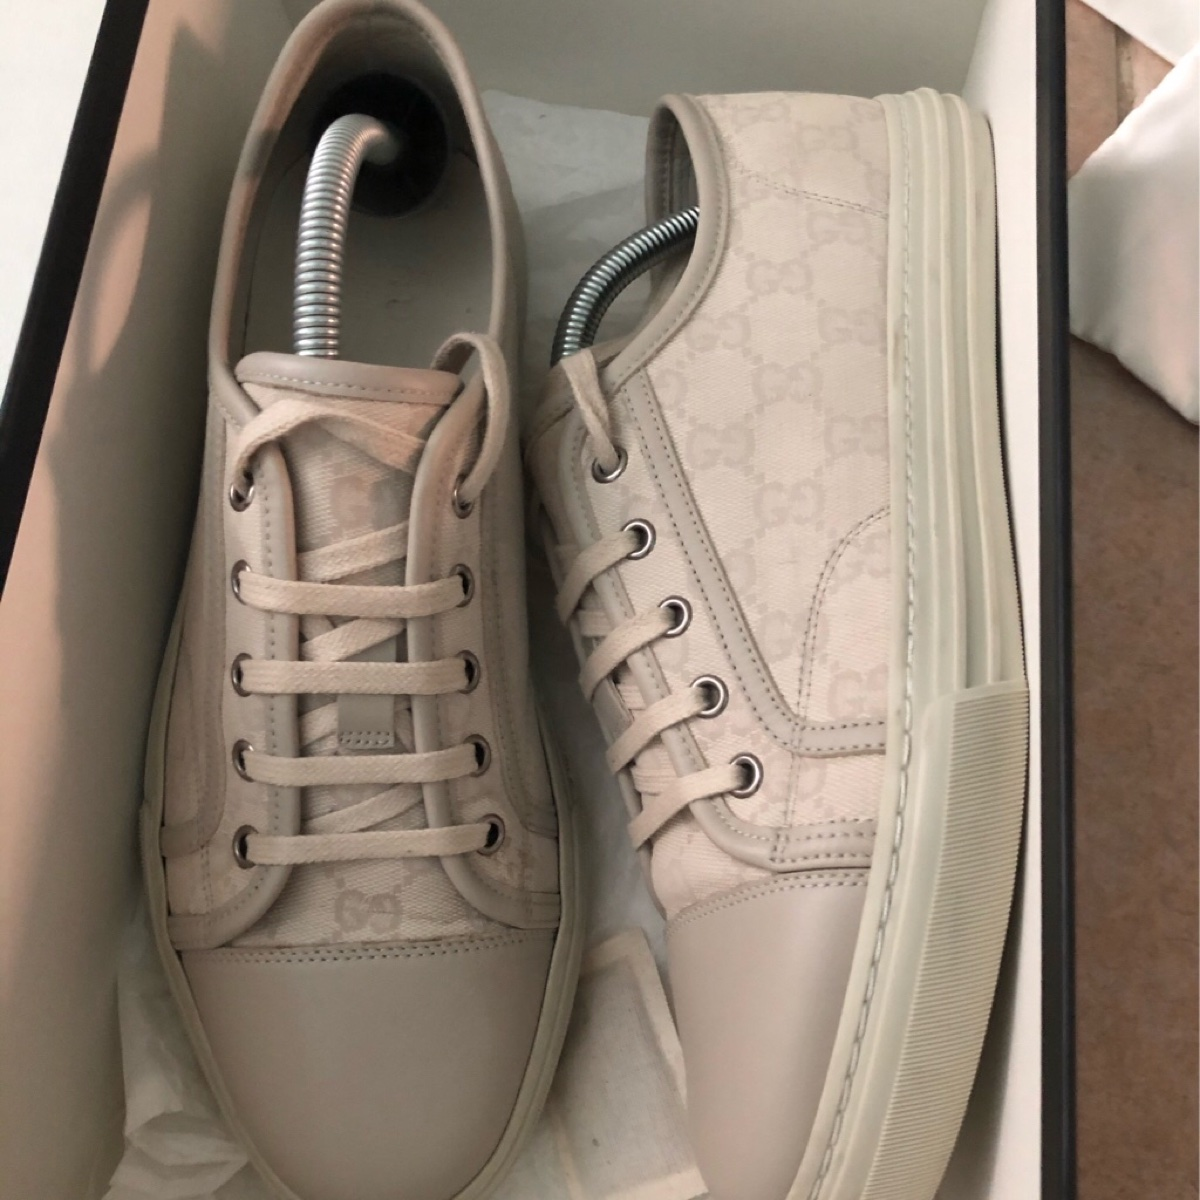 Gucci GG Canvas Low top sneakers Size 8